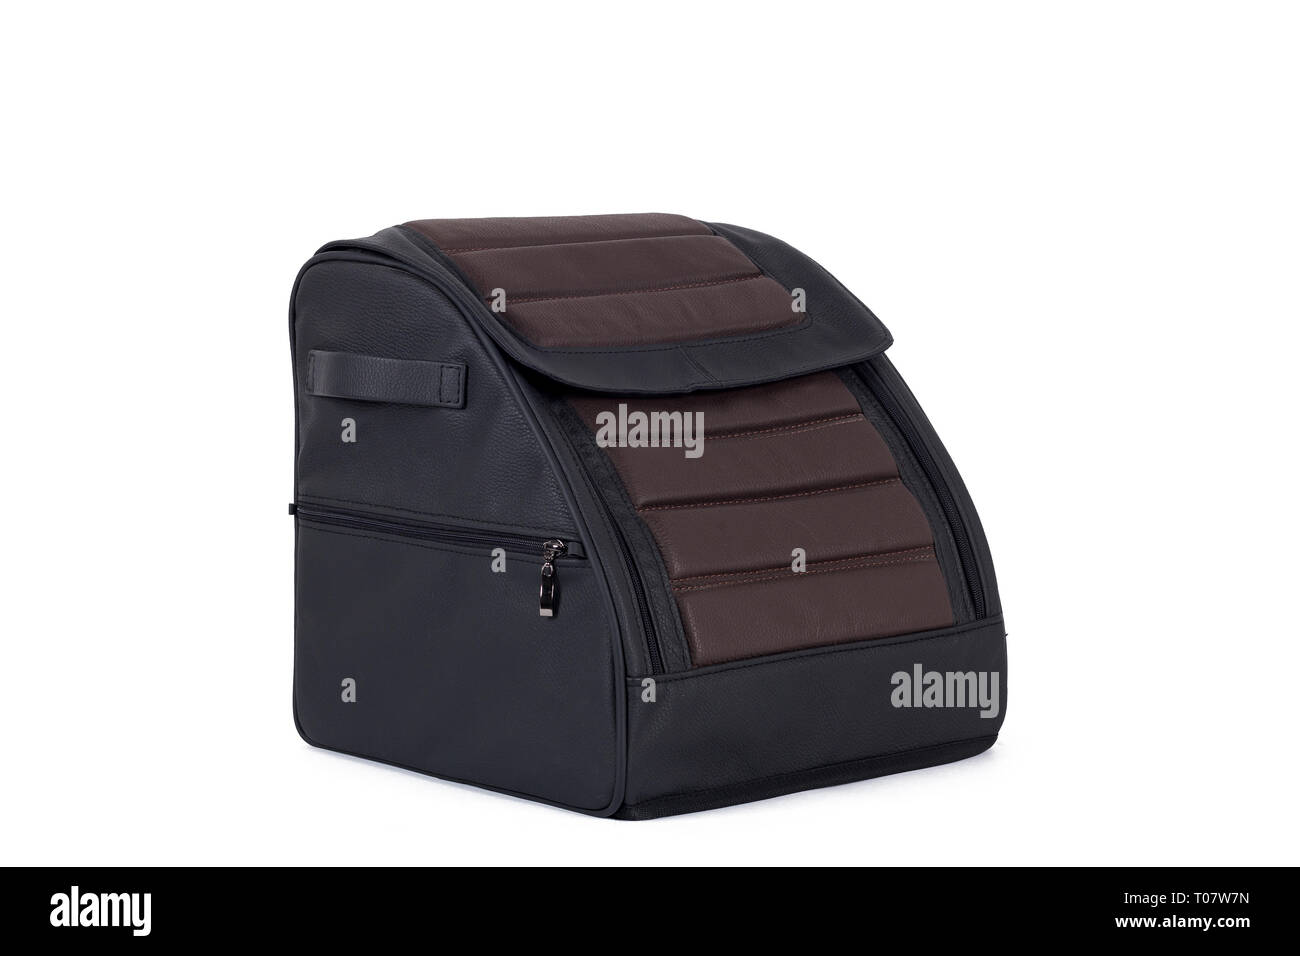 Black-brown  leather bag for storing things and traveling in the trunk of a car on a white isolated background. Luggage, handmade suitcase - Stock Image